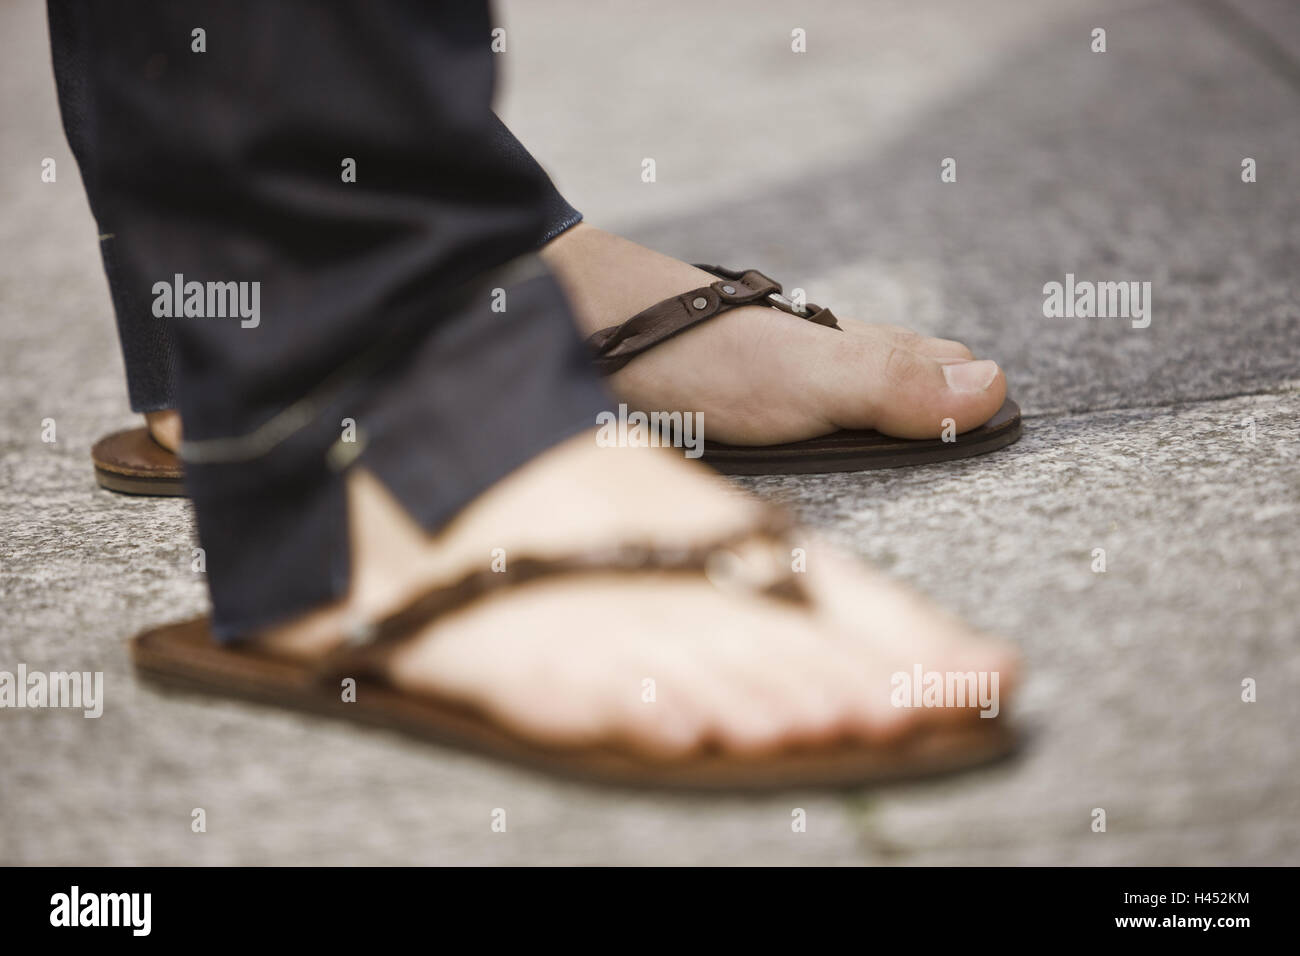 a75ac35613519d Flip Flops Sandals Detail Stock Photos   Flip Flops Sandals Detail ...